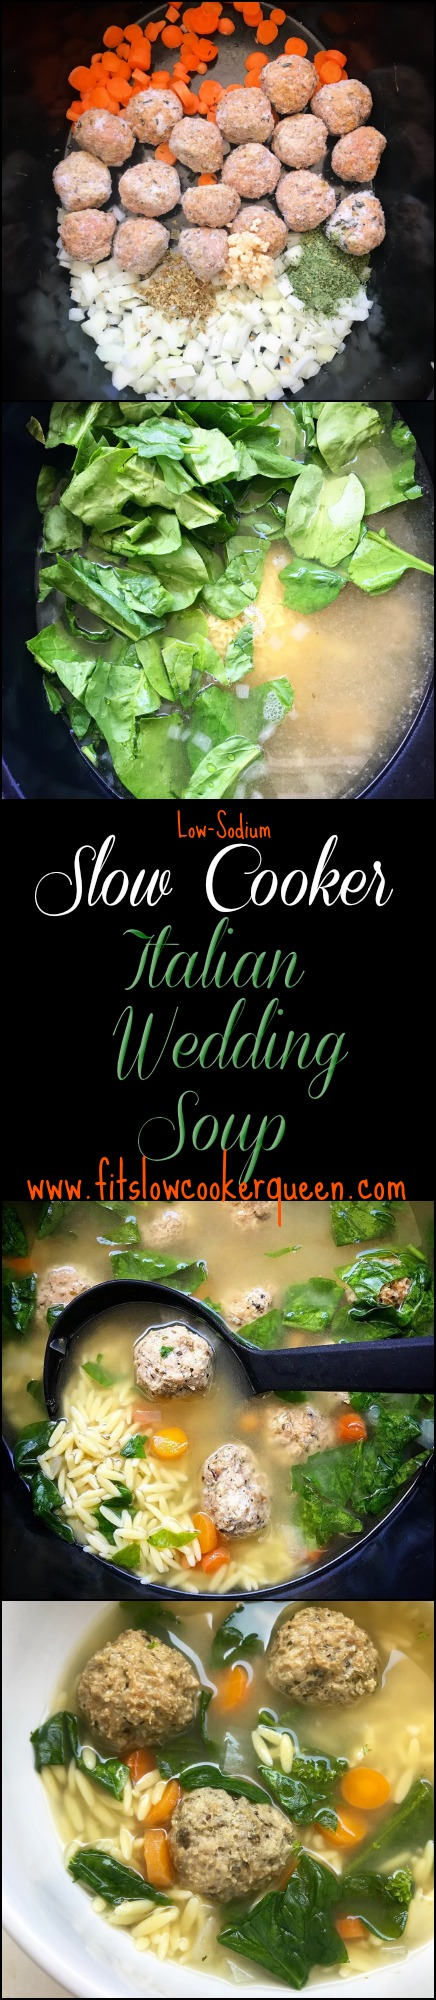 Italian wedding soup is a simple and healthy soup that can be served anytime, not just weddings. This low-sodium version cooks in the slow cooker to produce a flavorful soup that can be served as a starter or main course.